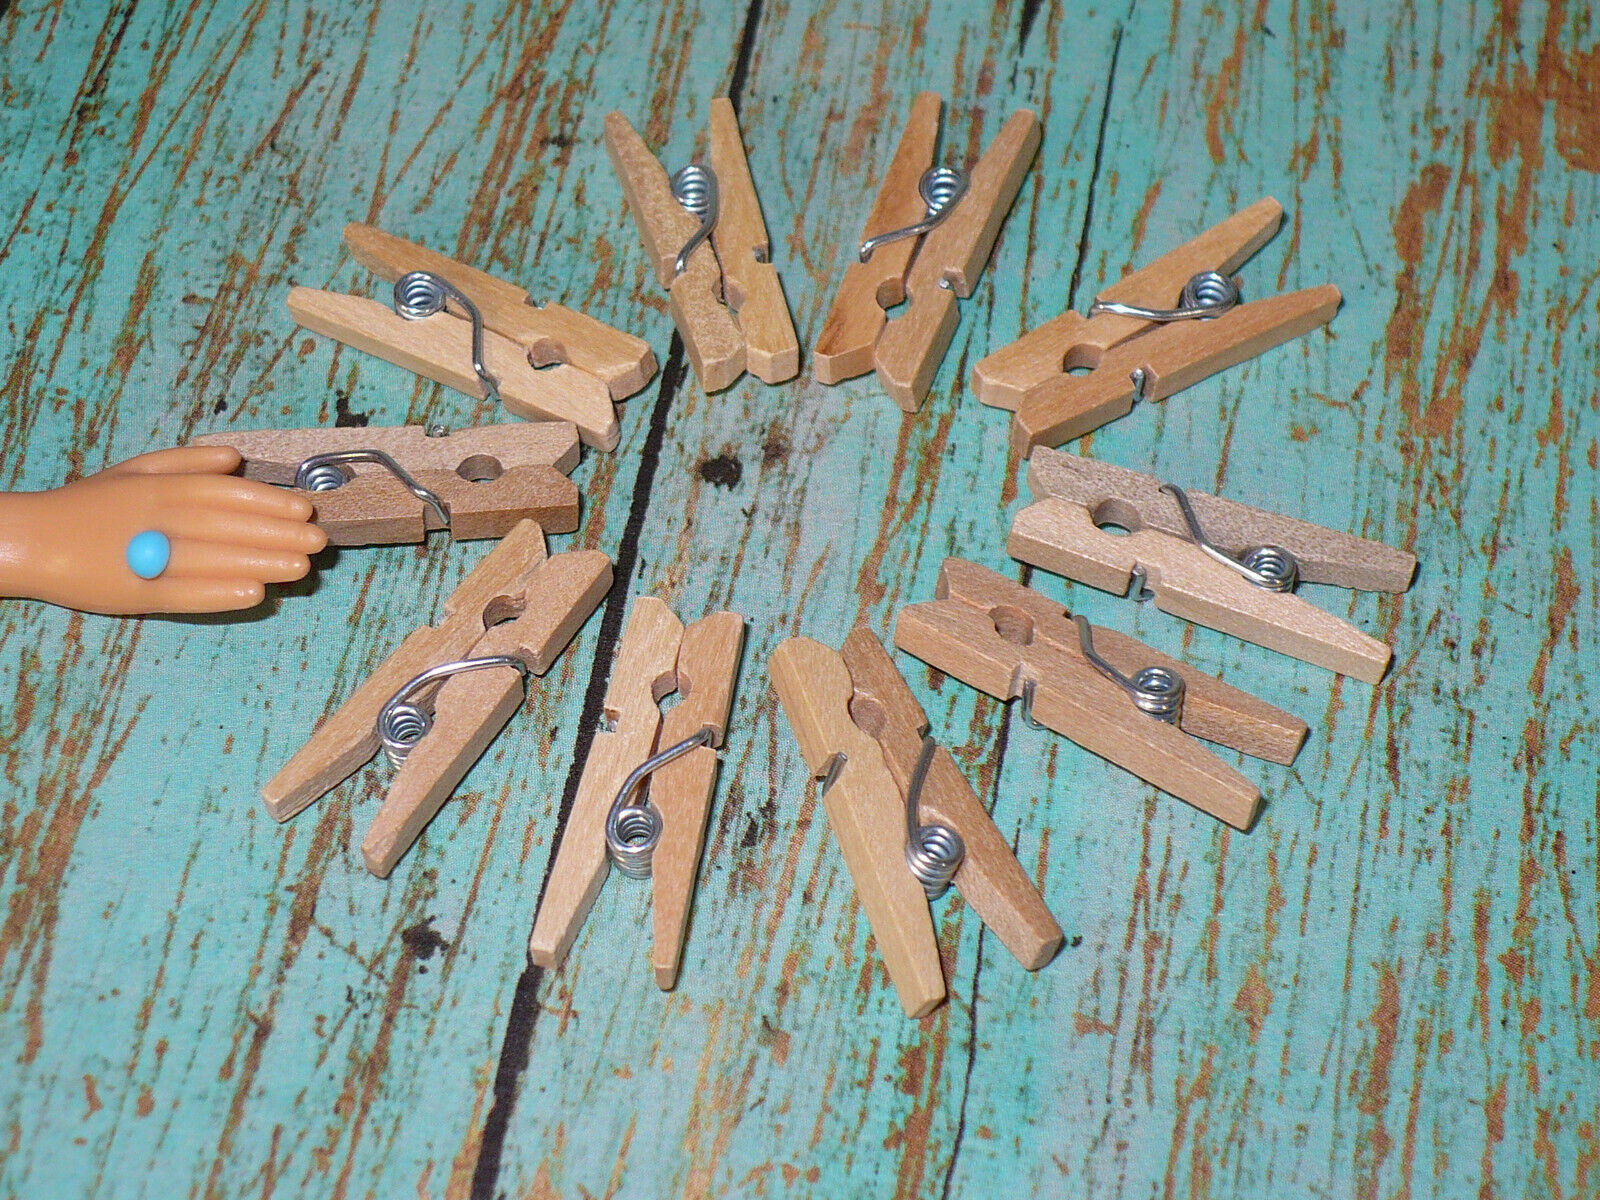 Barbie Doll Size WOODEN CLOTHESPINS Accessory Lot Of 10 DREAMHOUSE Accessories  - $7.99